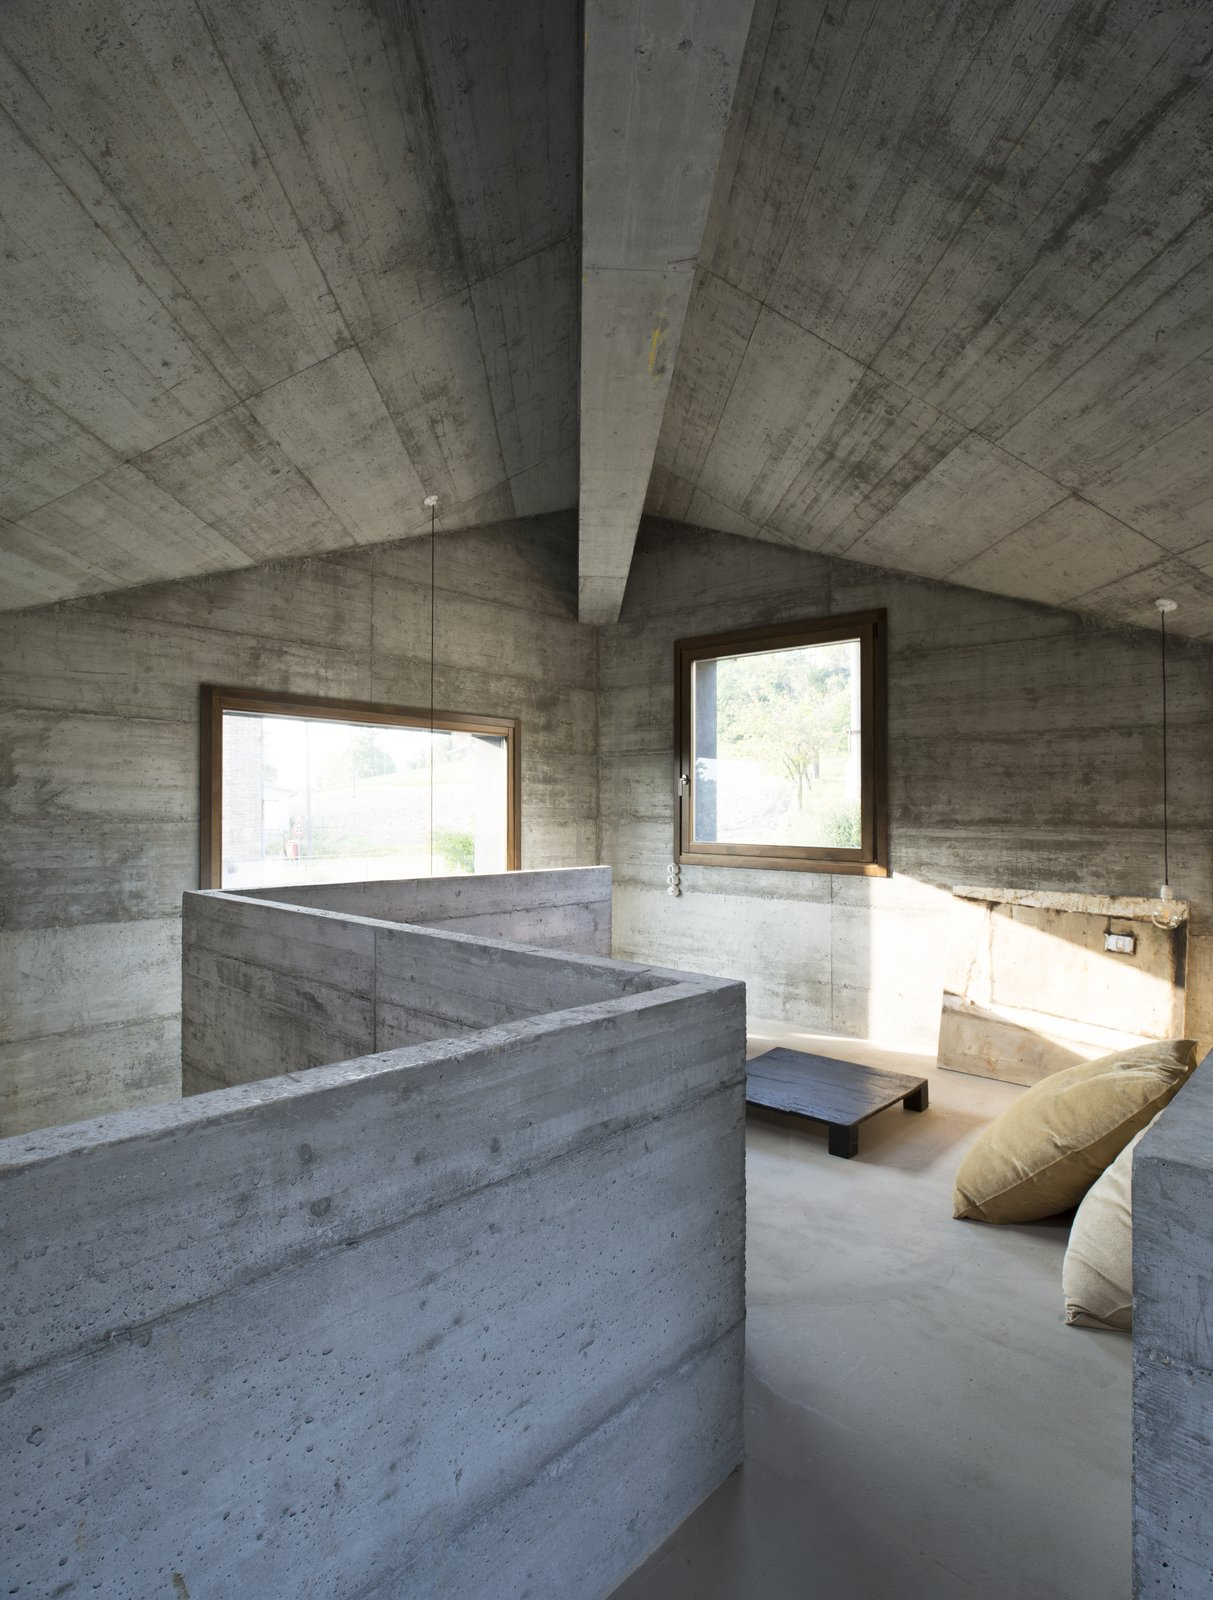 Hallway and Concrete Floor  Photo 9 of 11 in A Concrete Hideaway in the Italian Countryside